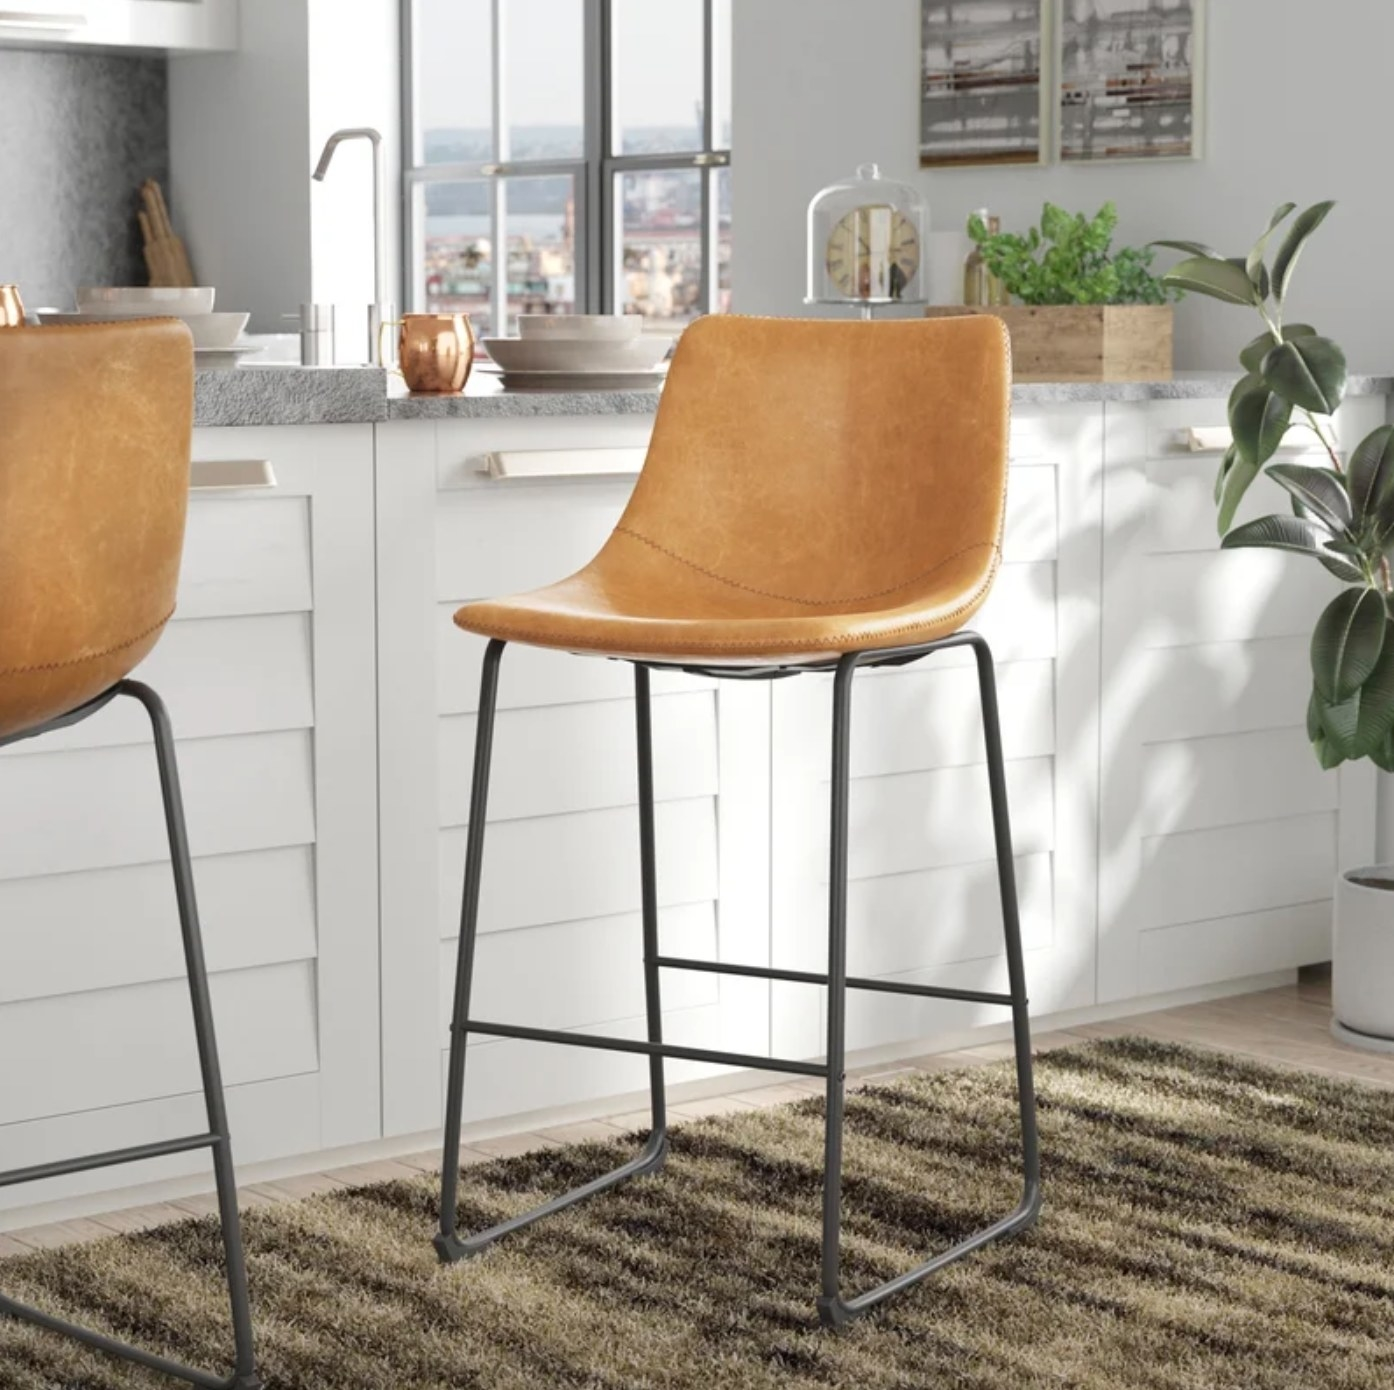 The set of bar stools with black legs and a tan seat